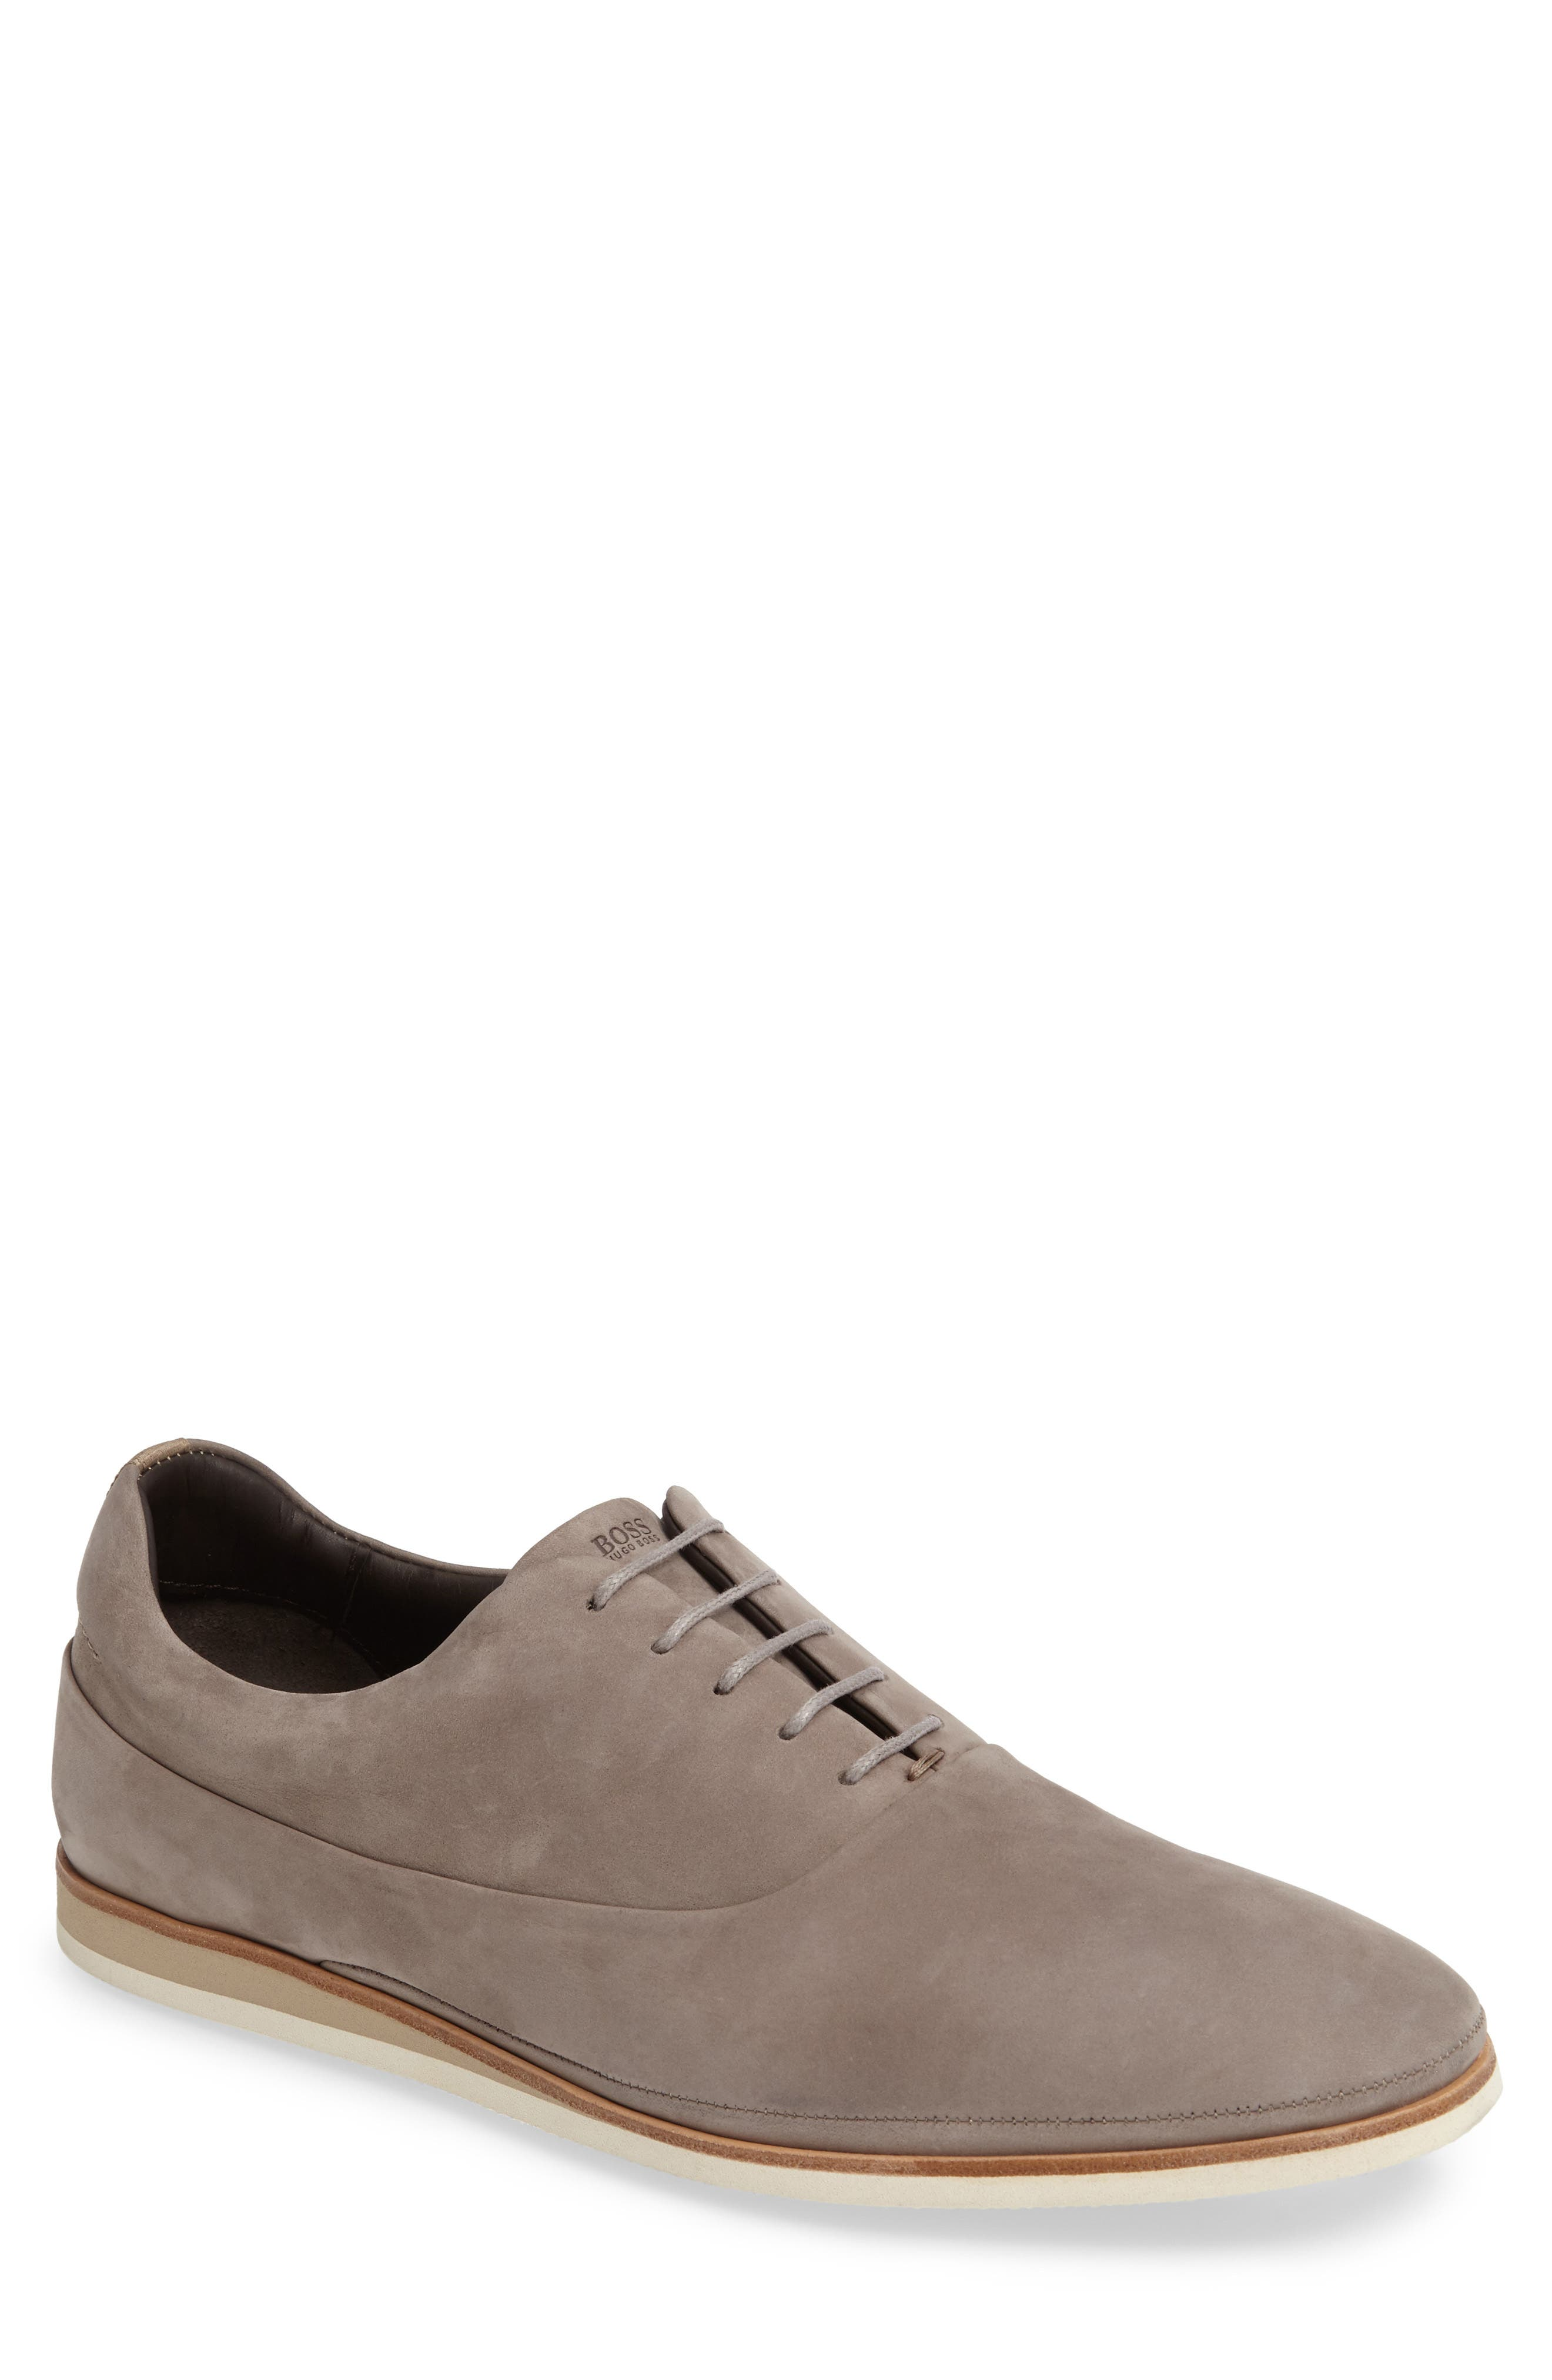 BOSS Eclectic Plain Toe Oxford (Men)